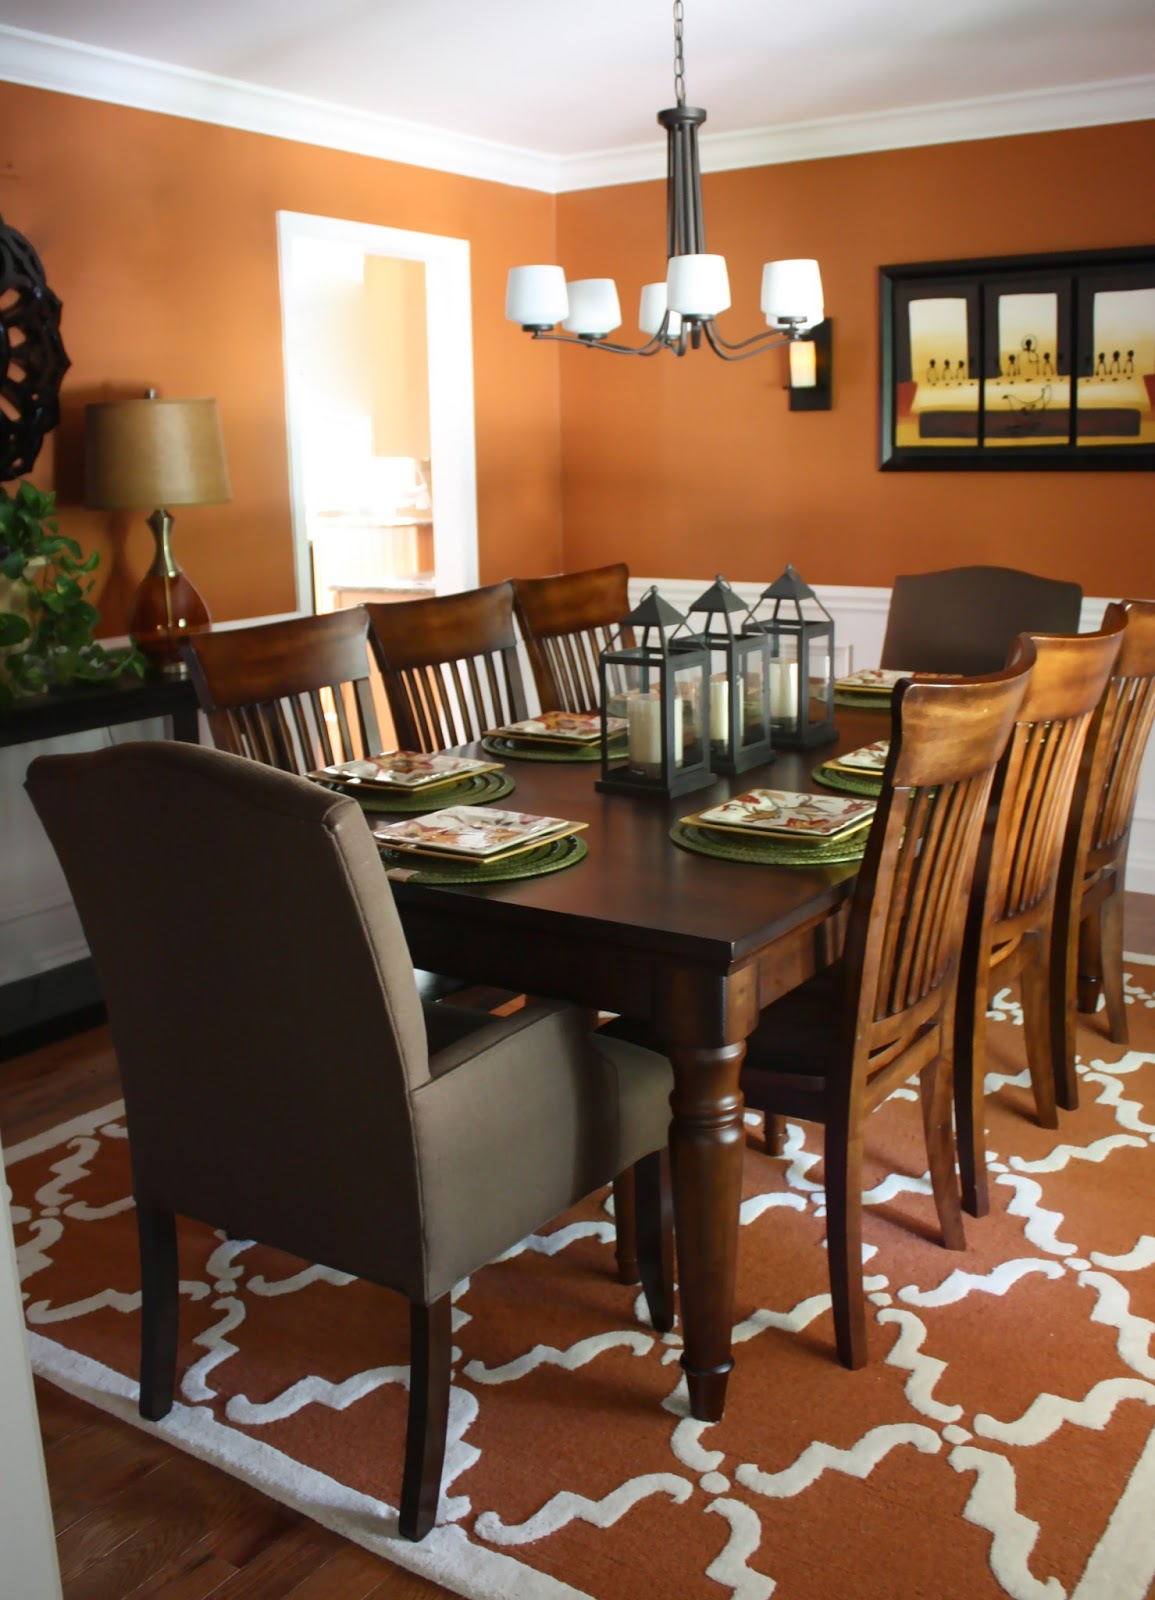 Her Room Already Had Great Bones. A Spicy Orange Wall Color, Picture Frame  Molding, And A Beautiful Dining Table. The Elements We Added To The Space  Were A ... Part 88